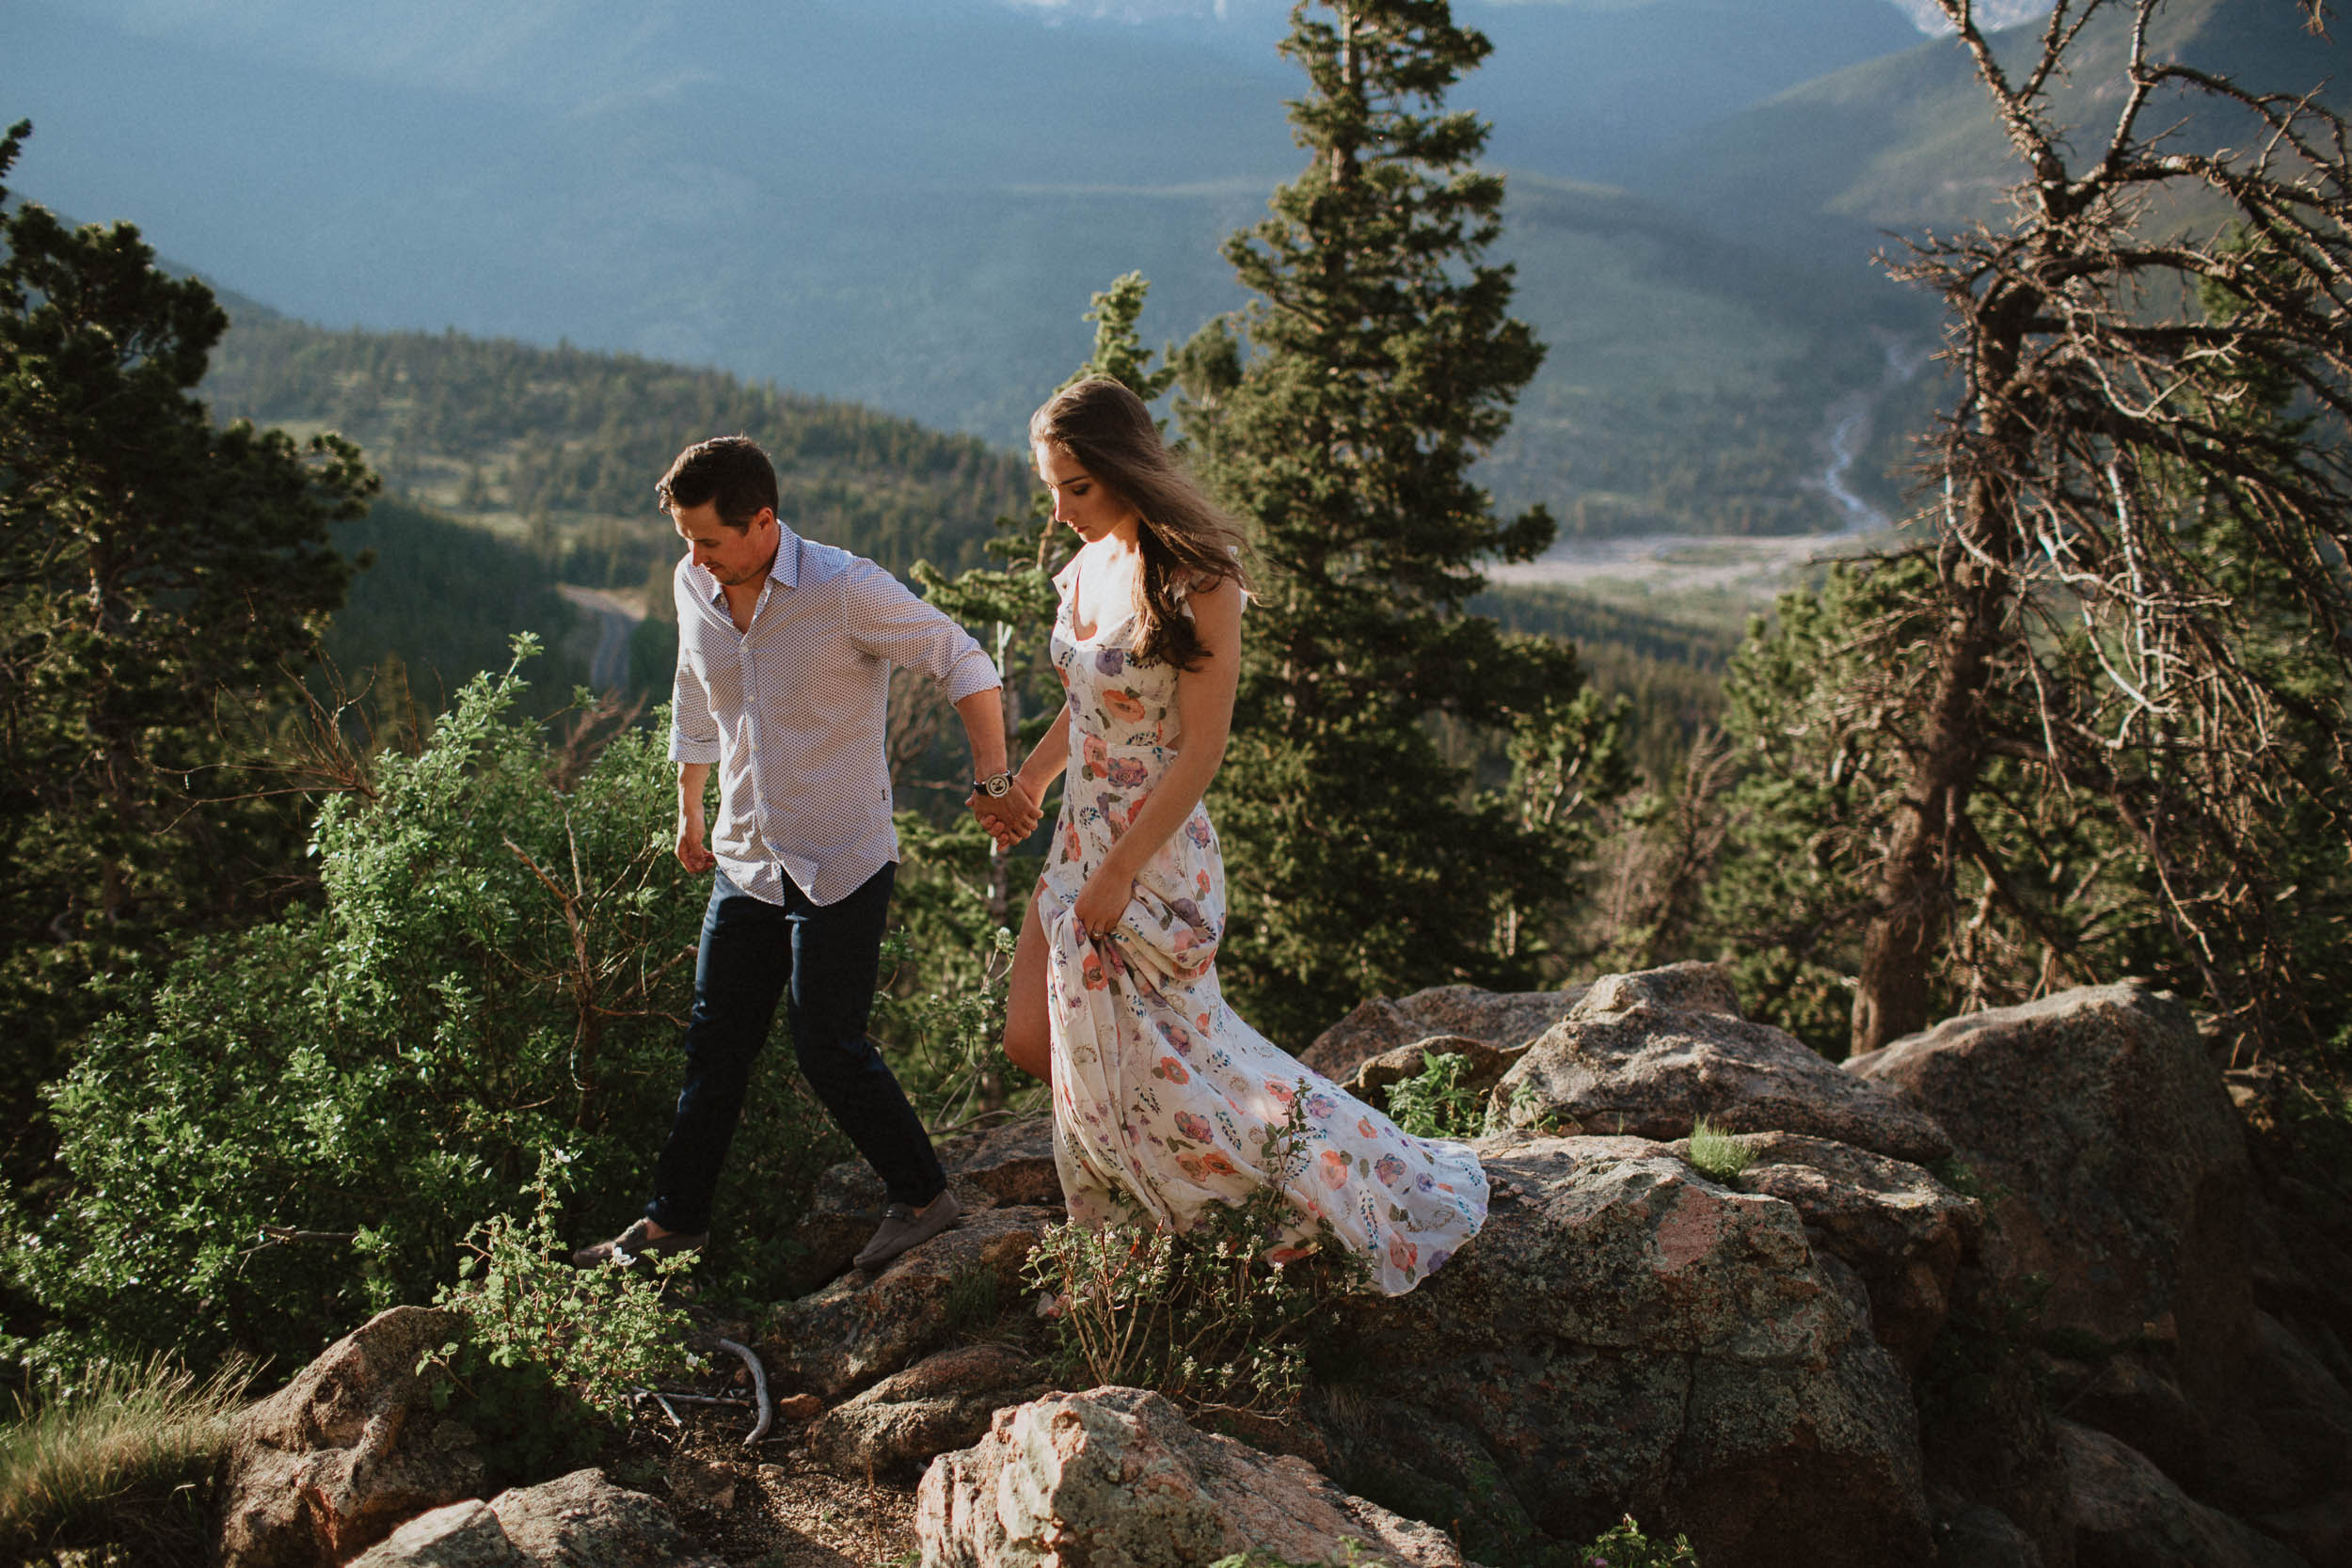 Rocky-Mountain-National-Park-Colorado-Engagement-023@2x.jpg